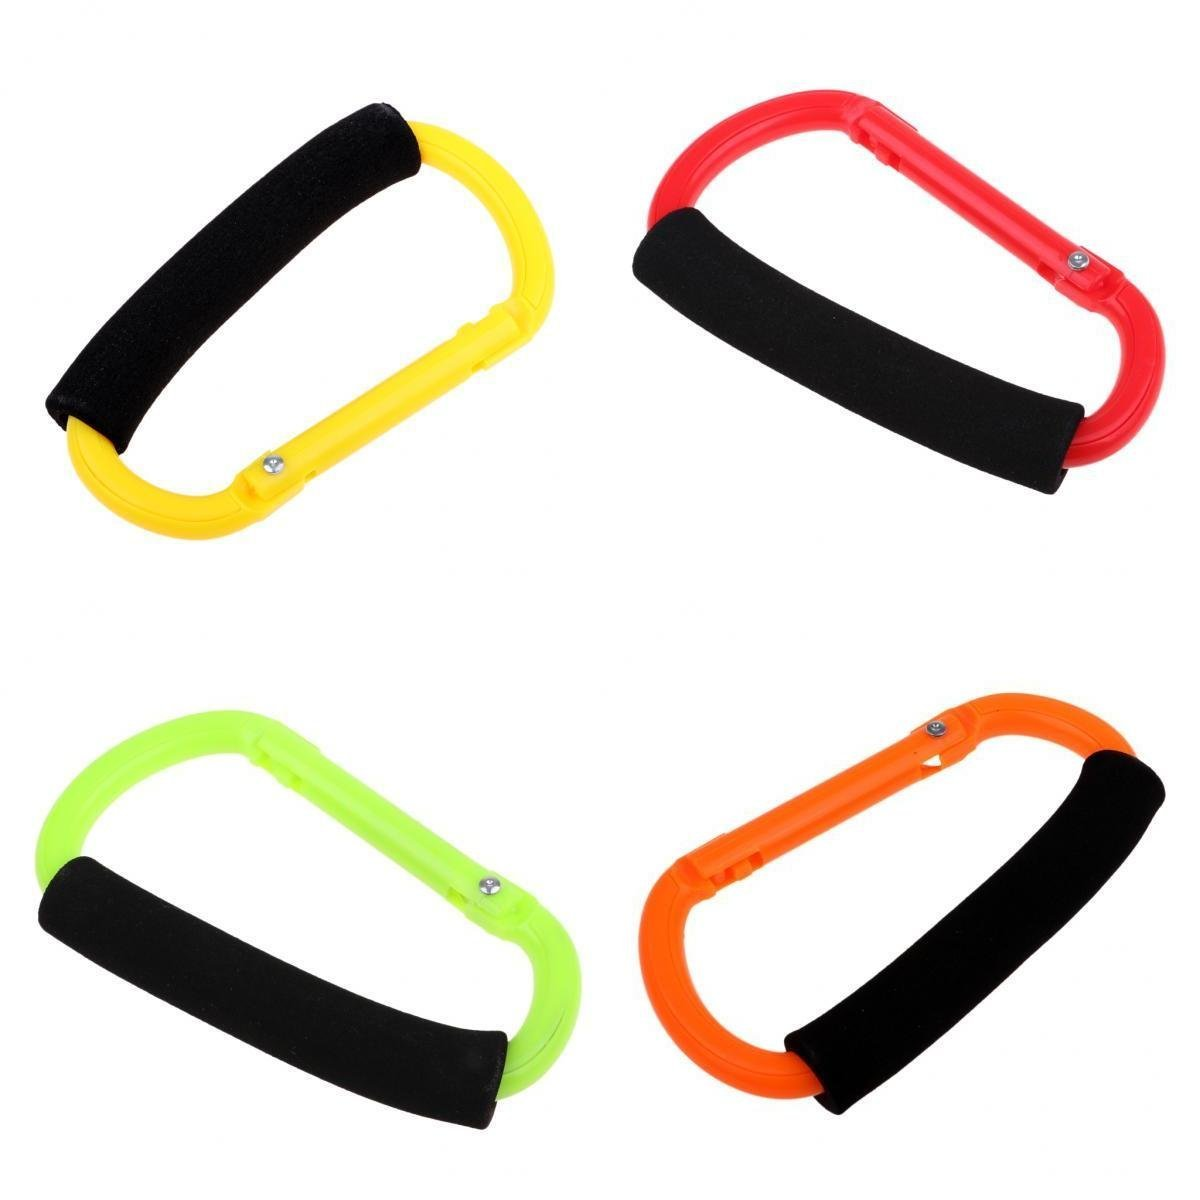 D DOLITY 4pcs D Type Hook Clip Multifunction Plastic Hanging Buckle for Shopping Bag Roller Skates Ice Skates Boots with Soft Hands Protective Sponge Cover